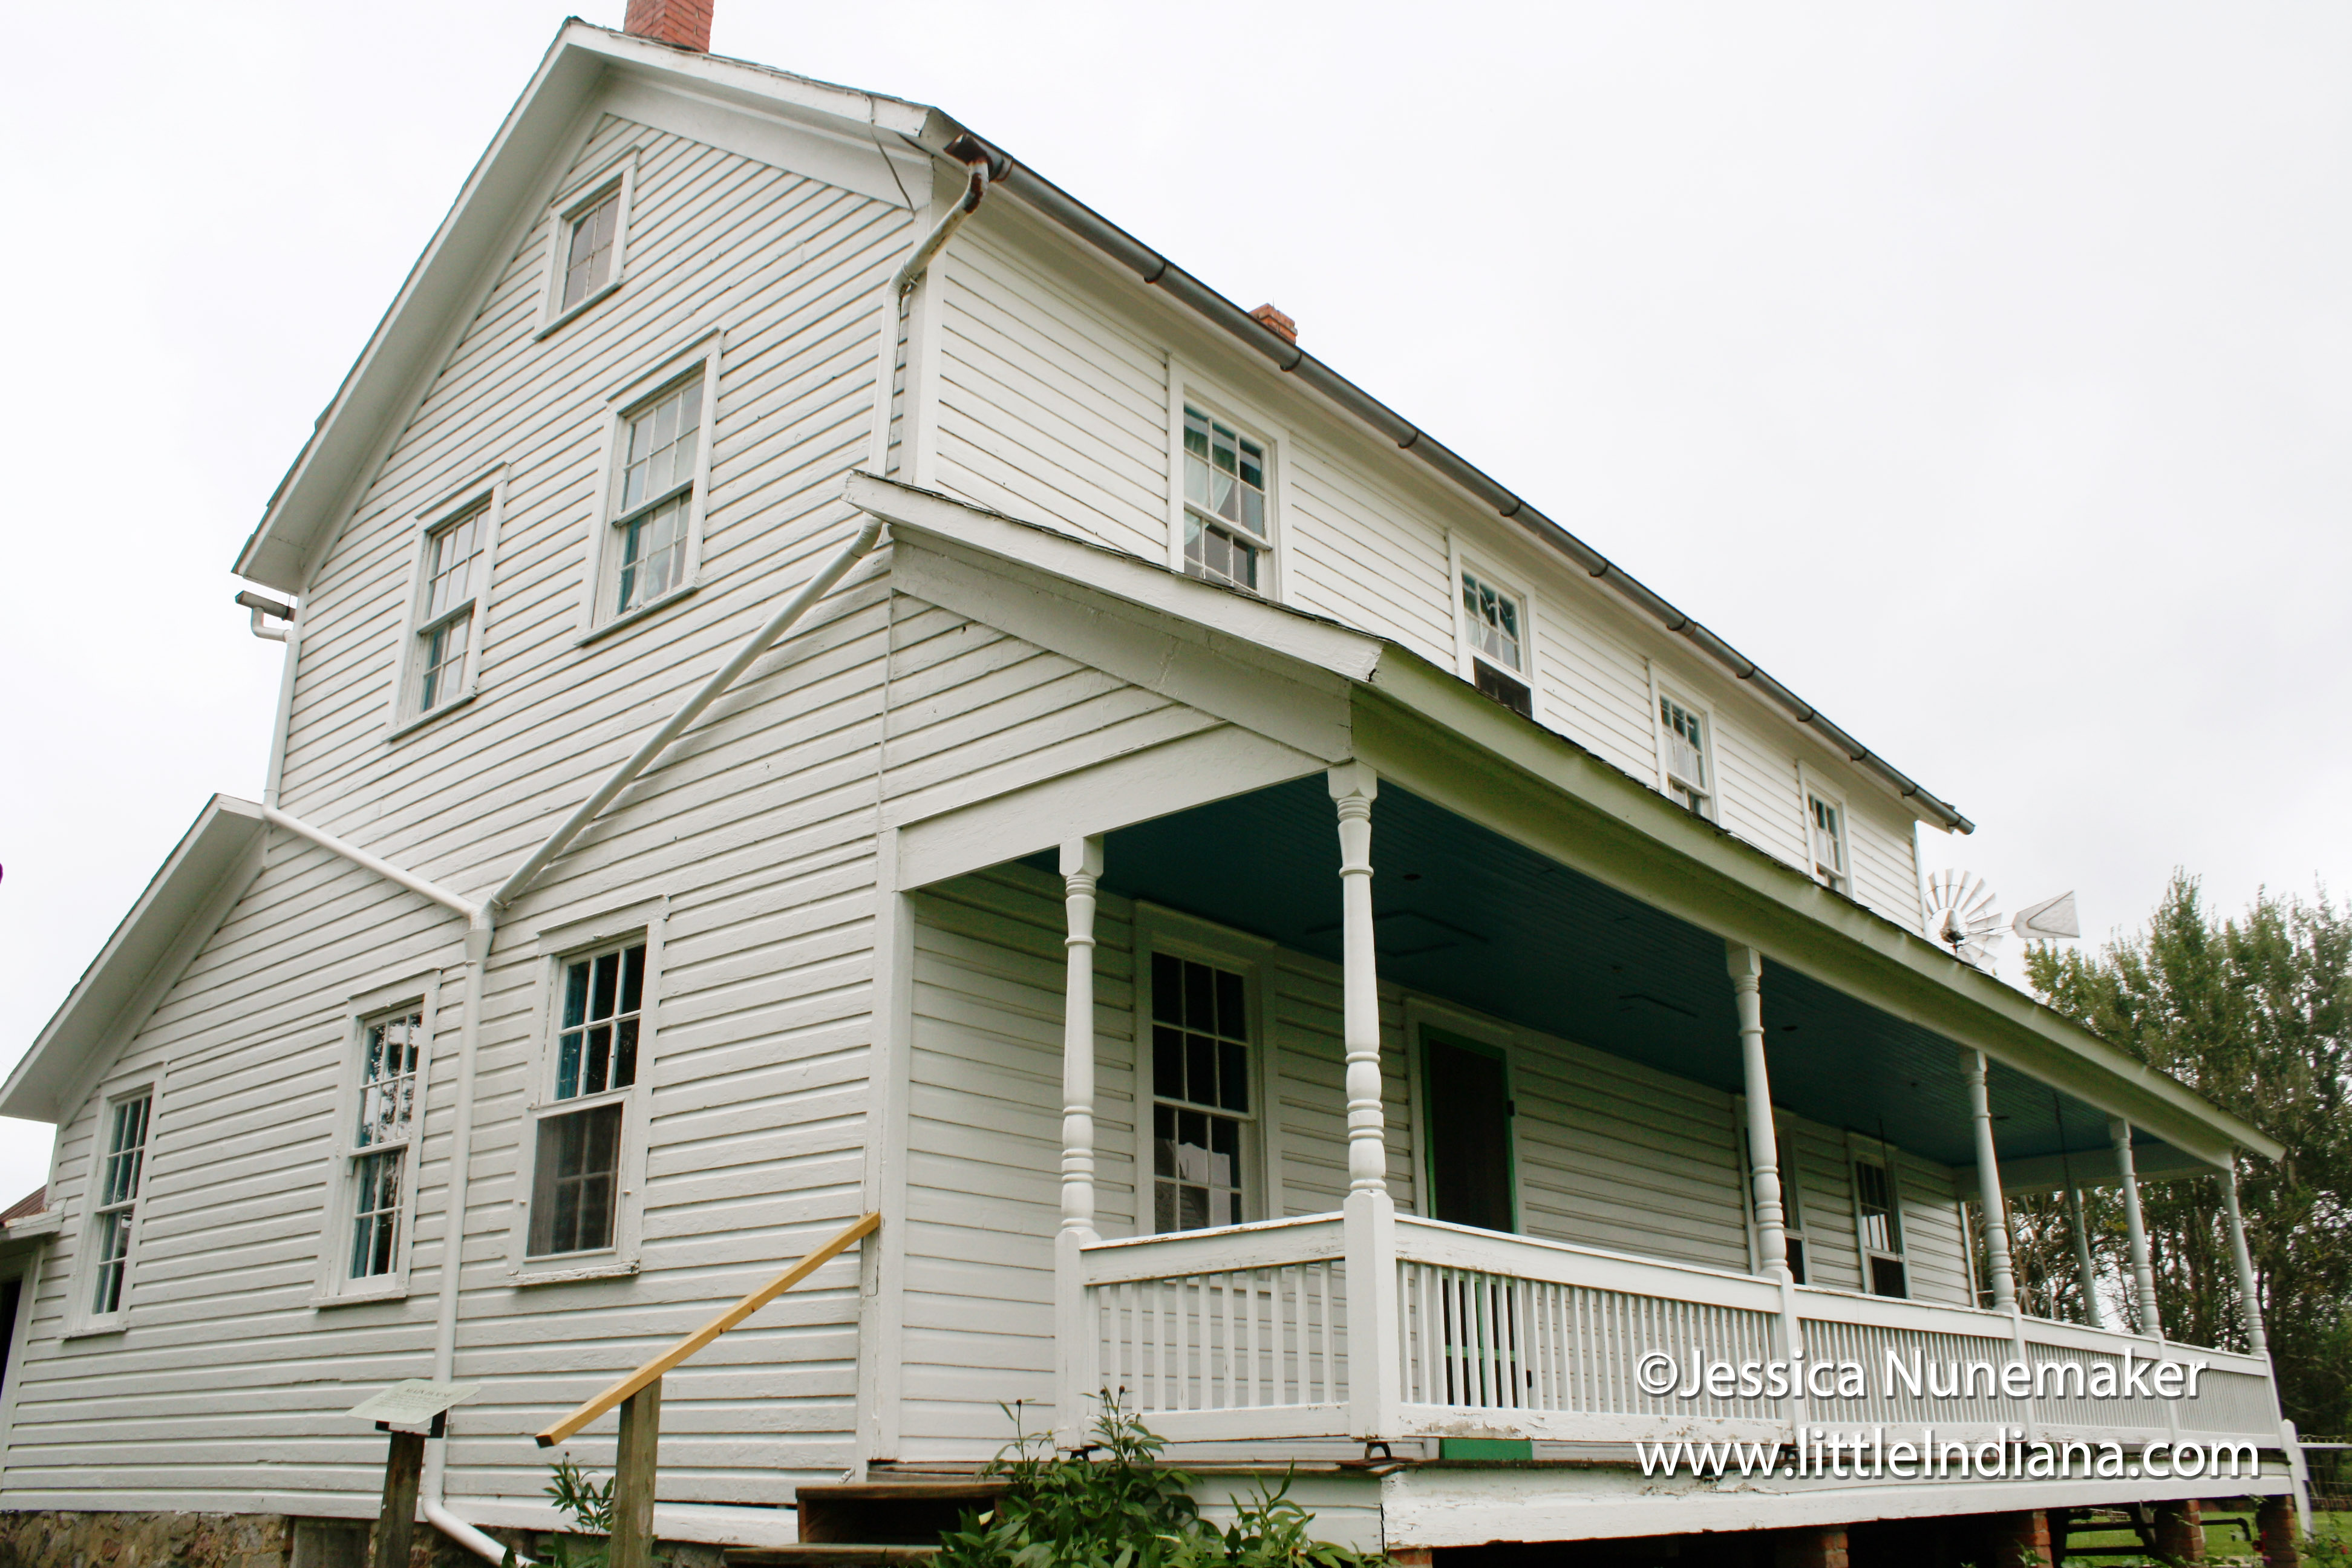 Amish Acres Home And Farm Tour In Nappanee Indiana